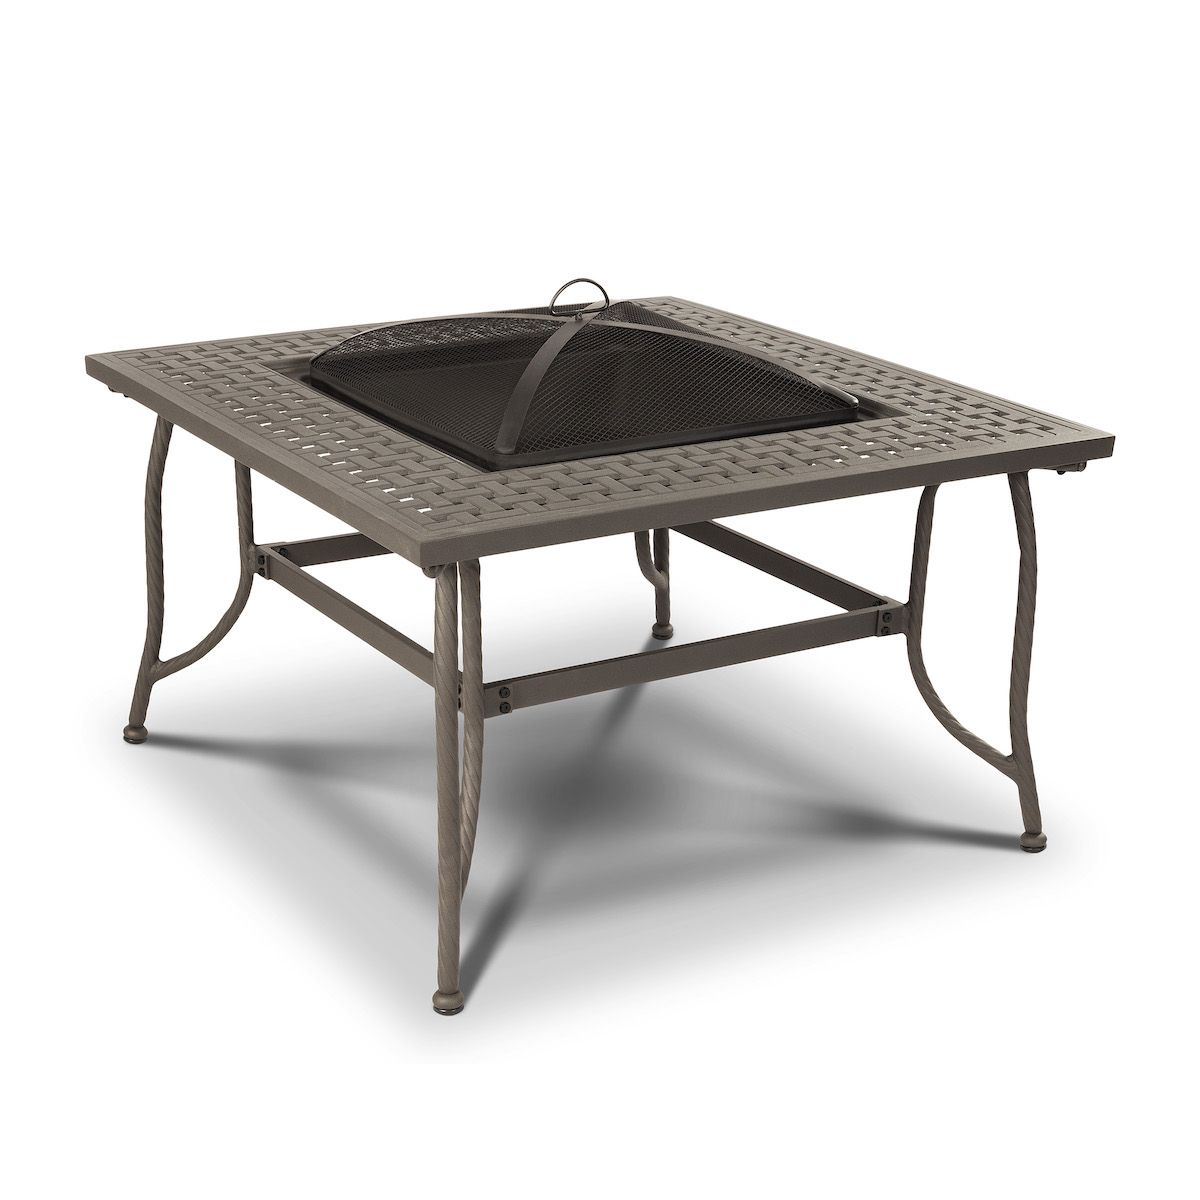 Real Flame Chelsea 37 Inch Fire Pit Table Shown In Use With Images Wood Burning Fires Wood Burning Fire Pit Fire Table